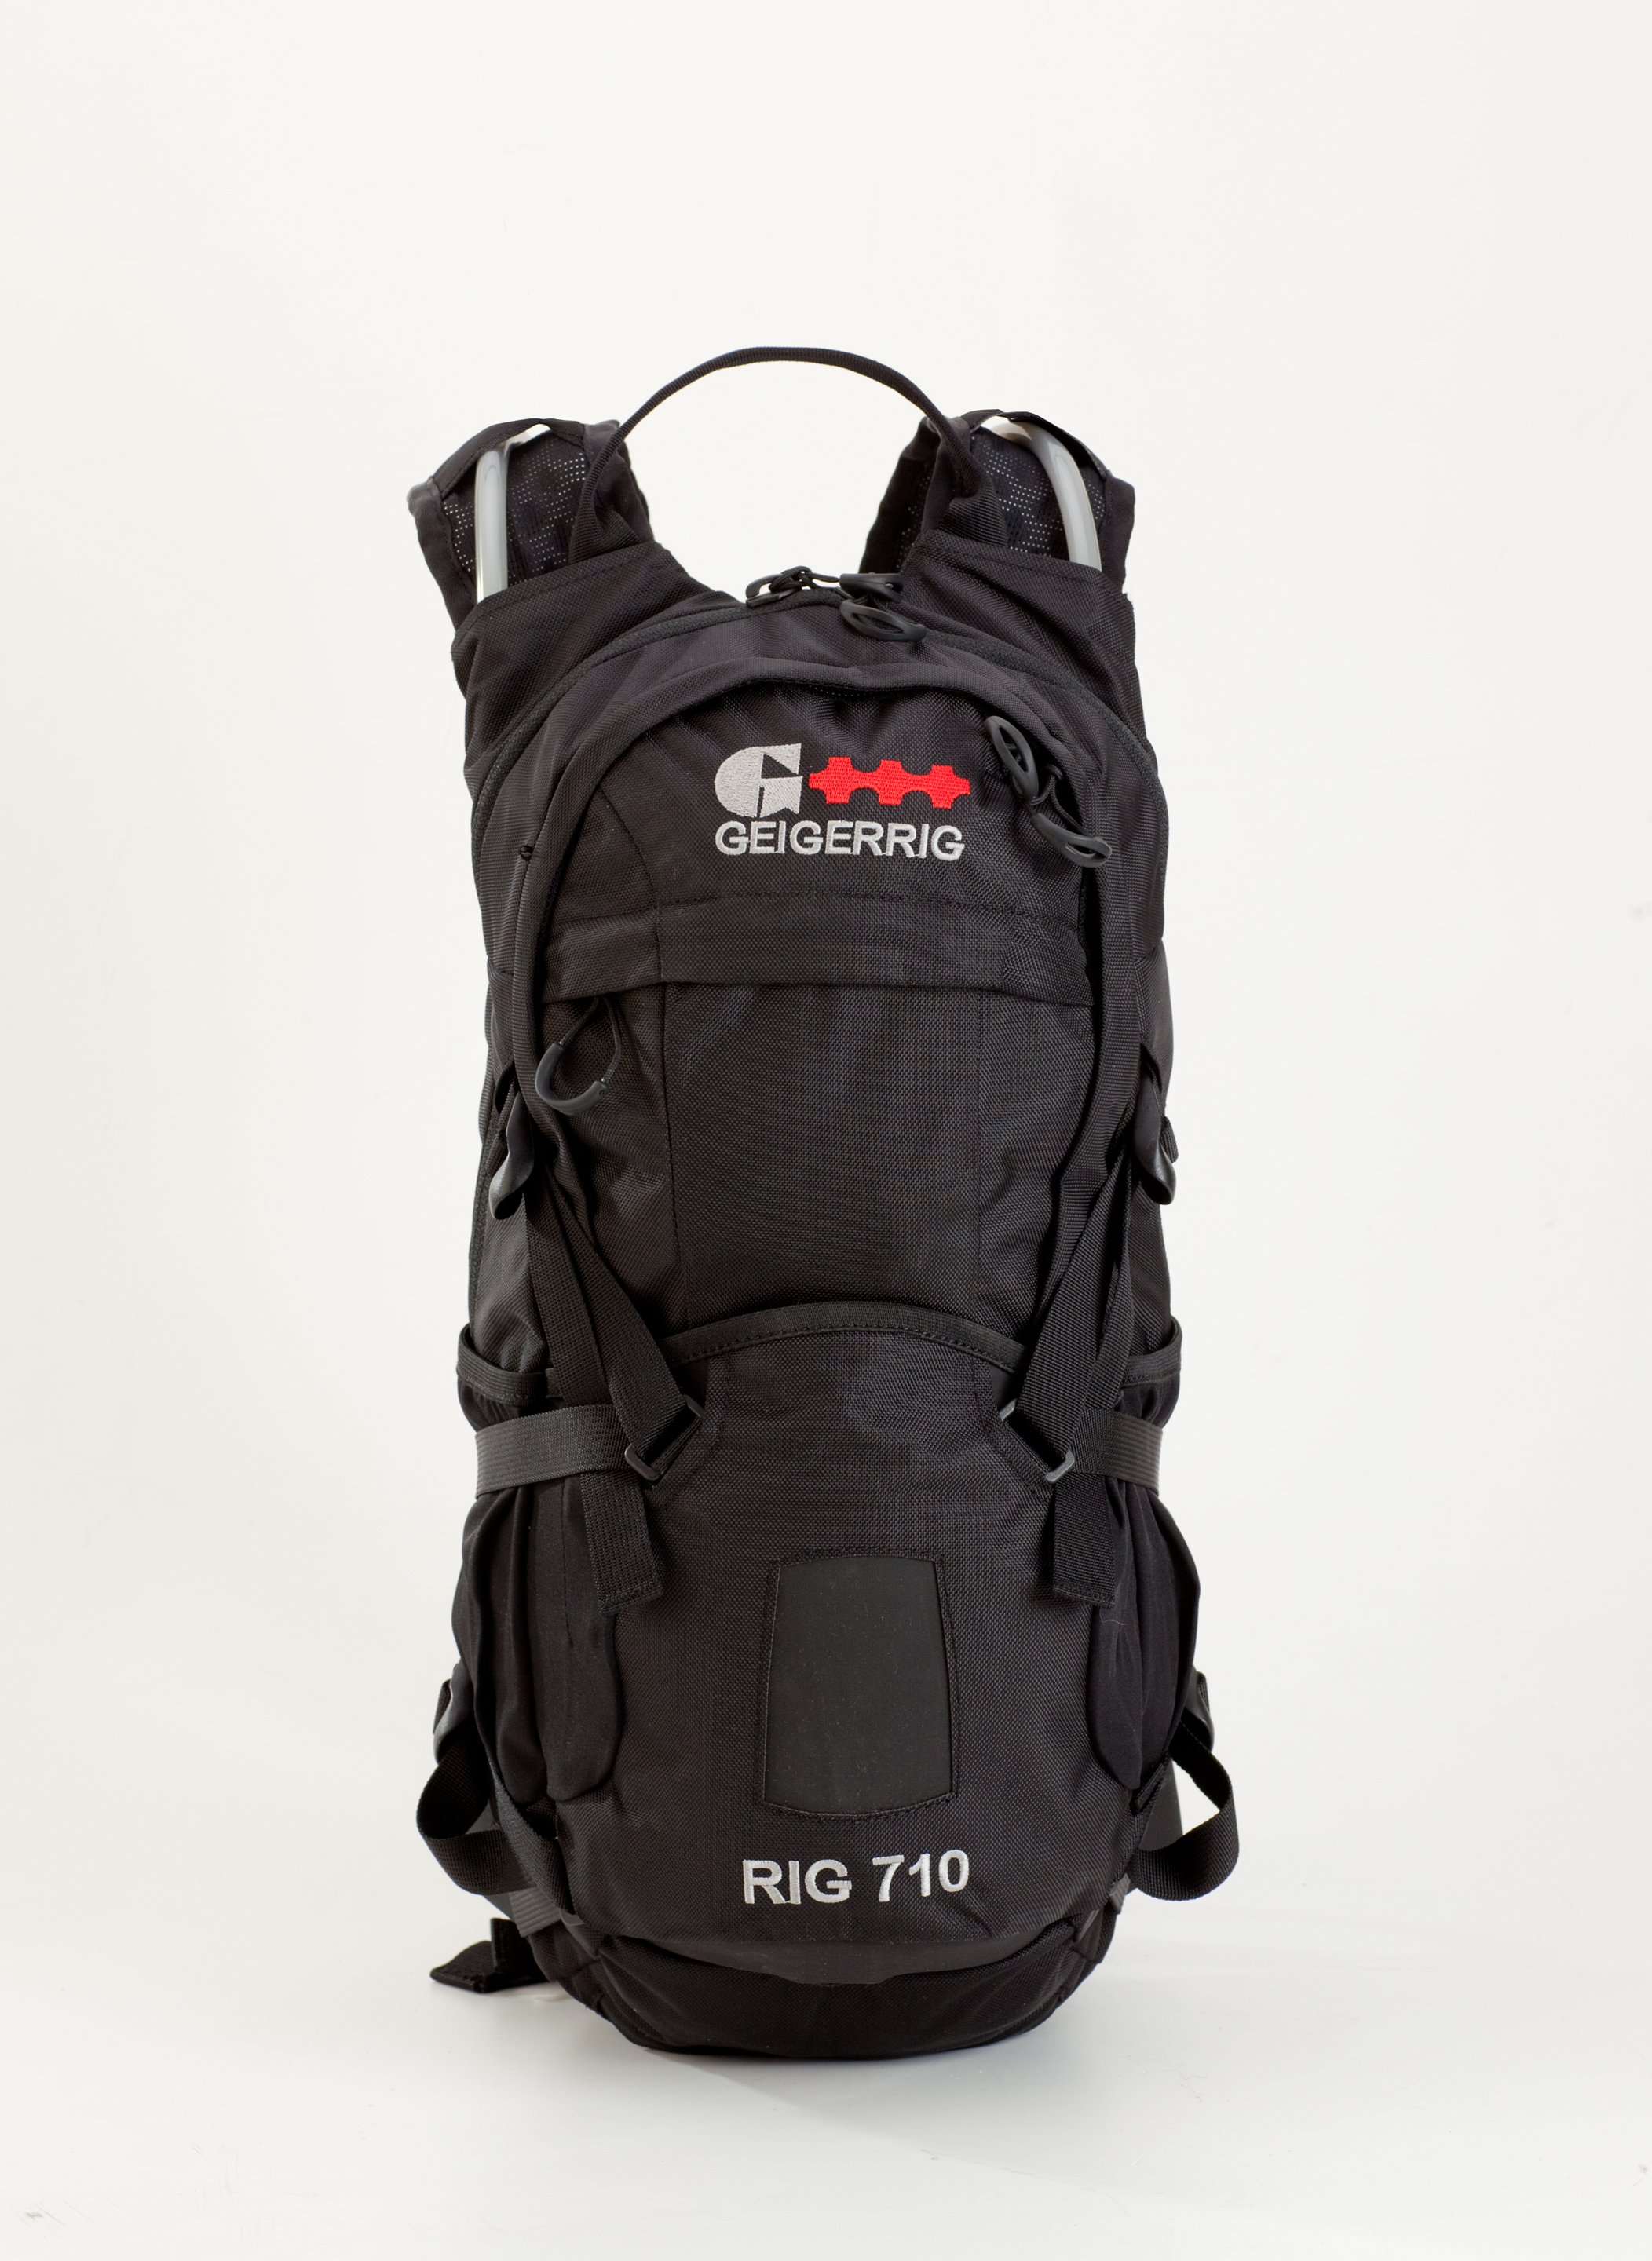 Geigerrig-G4-Rig-710-Running-70-Oz-Pressurized-Hydration-Pack